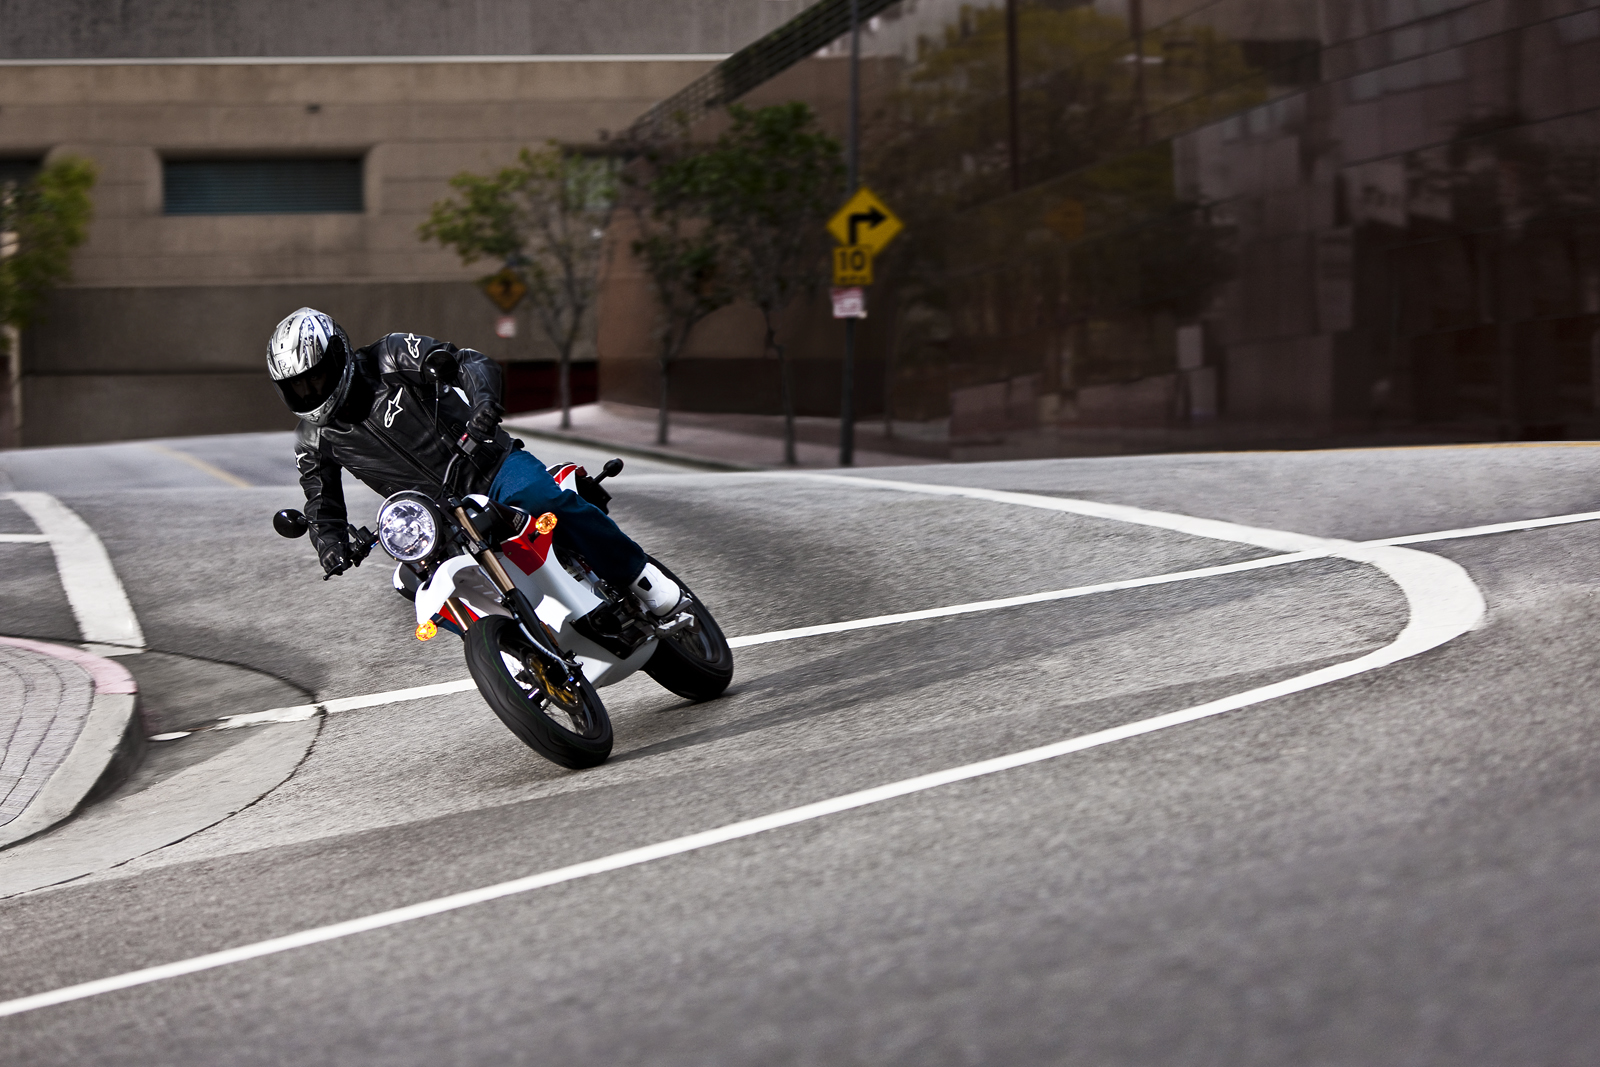 2010 Zero S Electric Motorcycle: Los Angeles - Sideways Around Corner